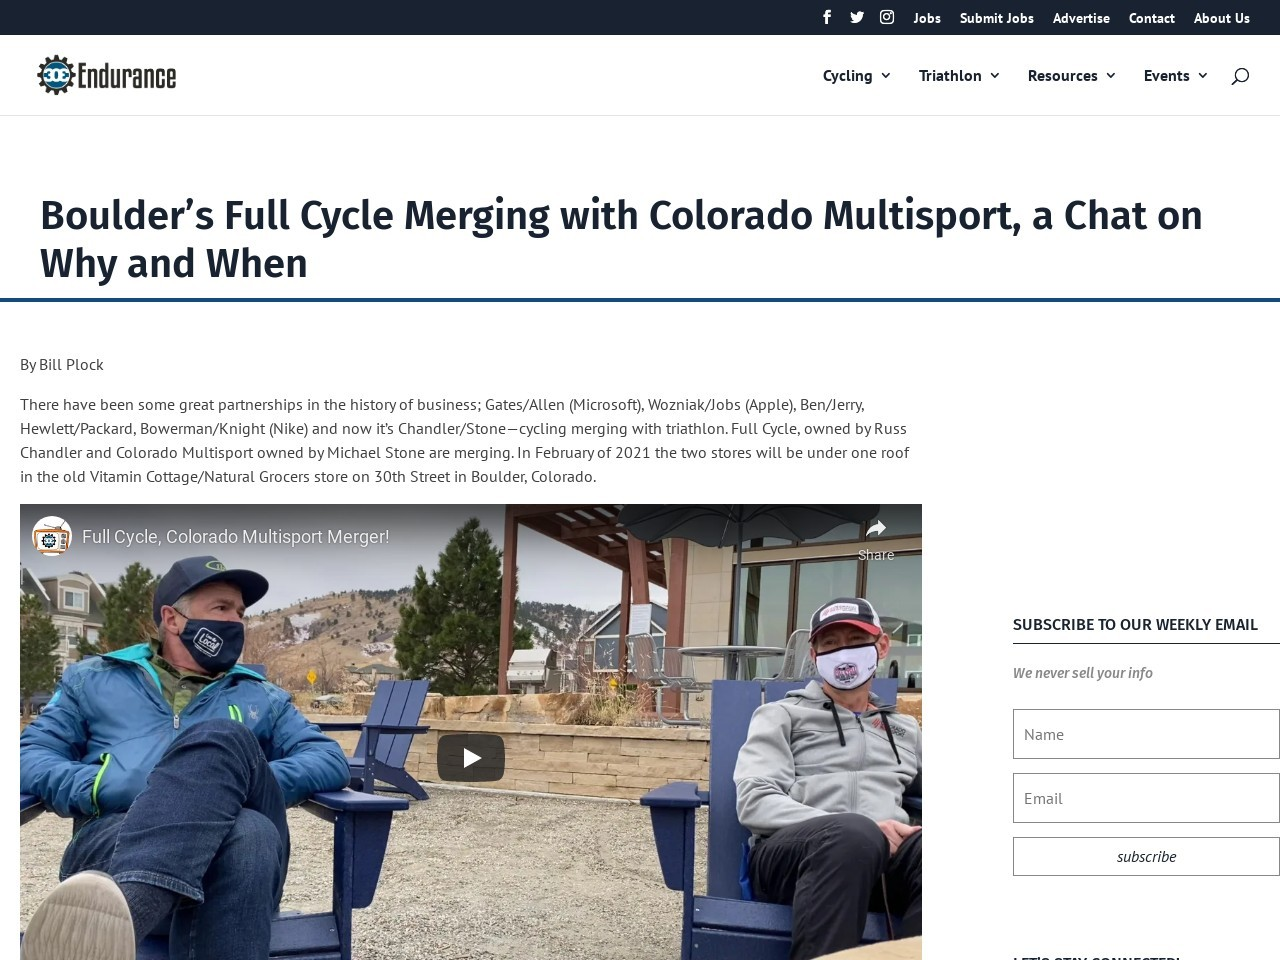 Boulder's Full Cycle Merging with Colorado Multisport, a Chat on Why and When